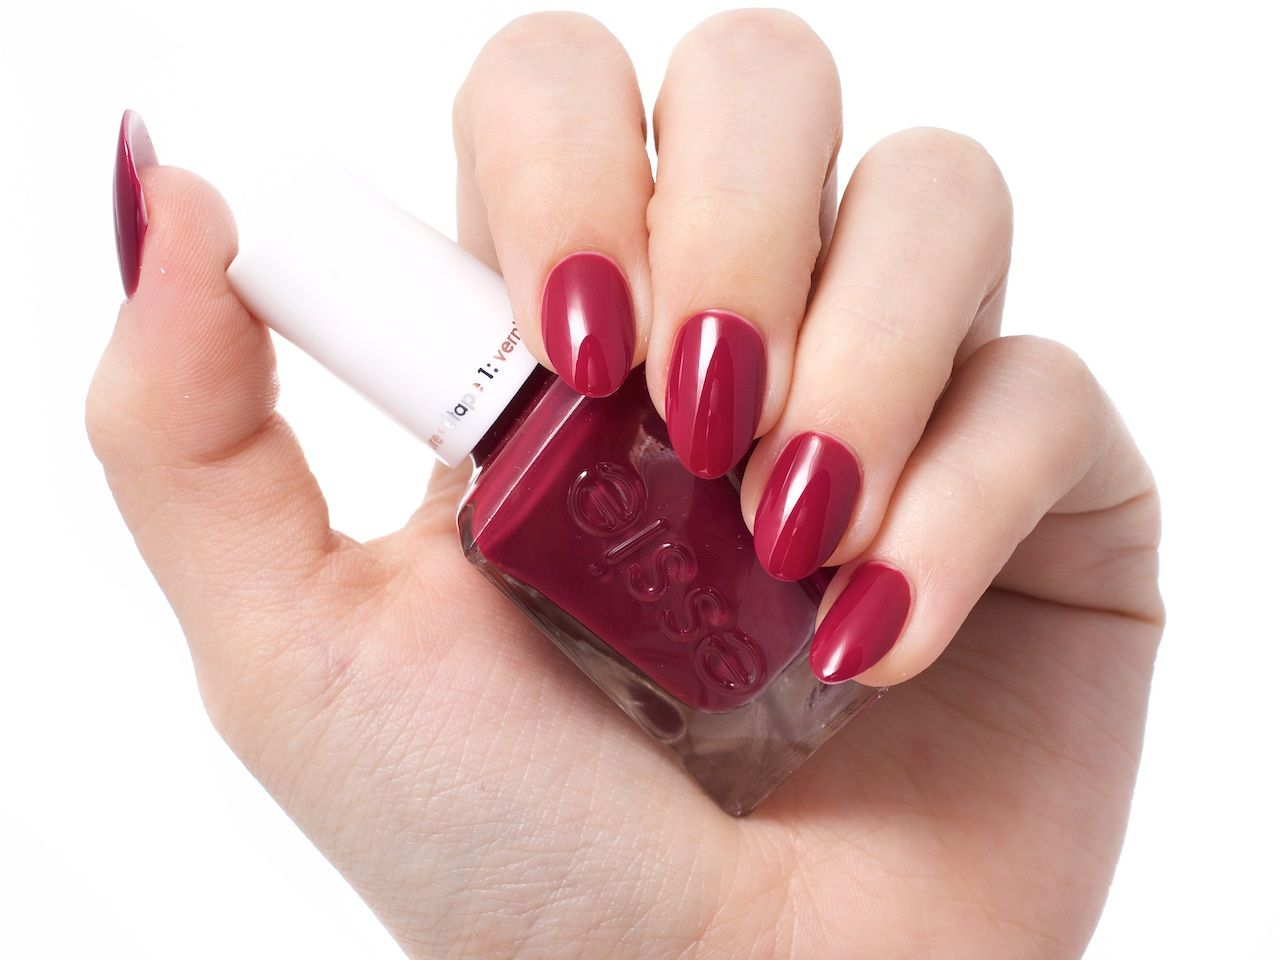 Essie Bridal Gel Couture Nail Polish in Berry In Love | UÑAS ...